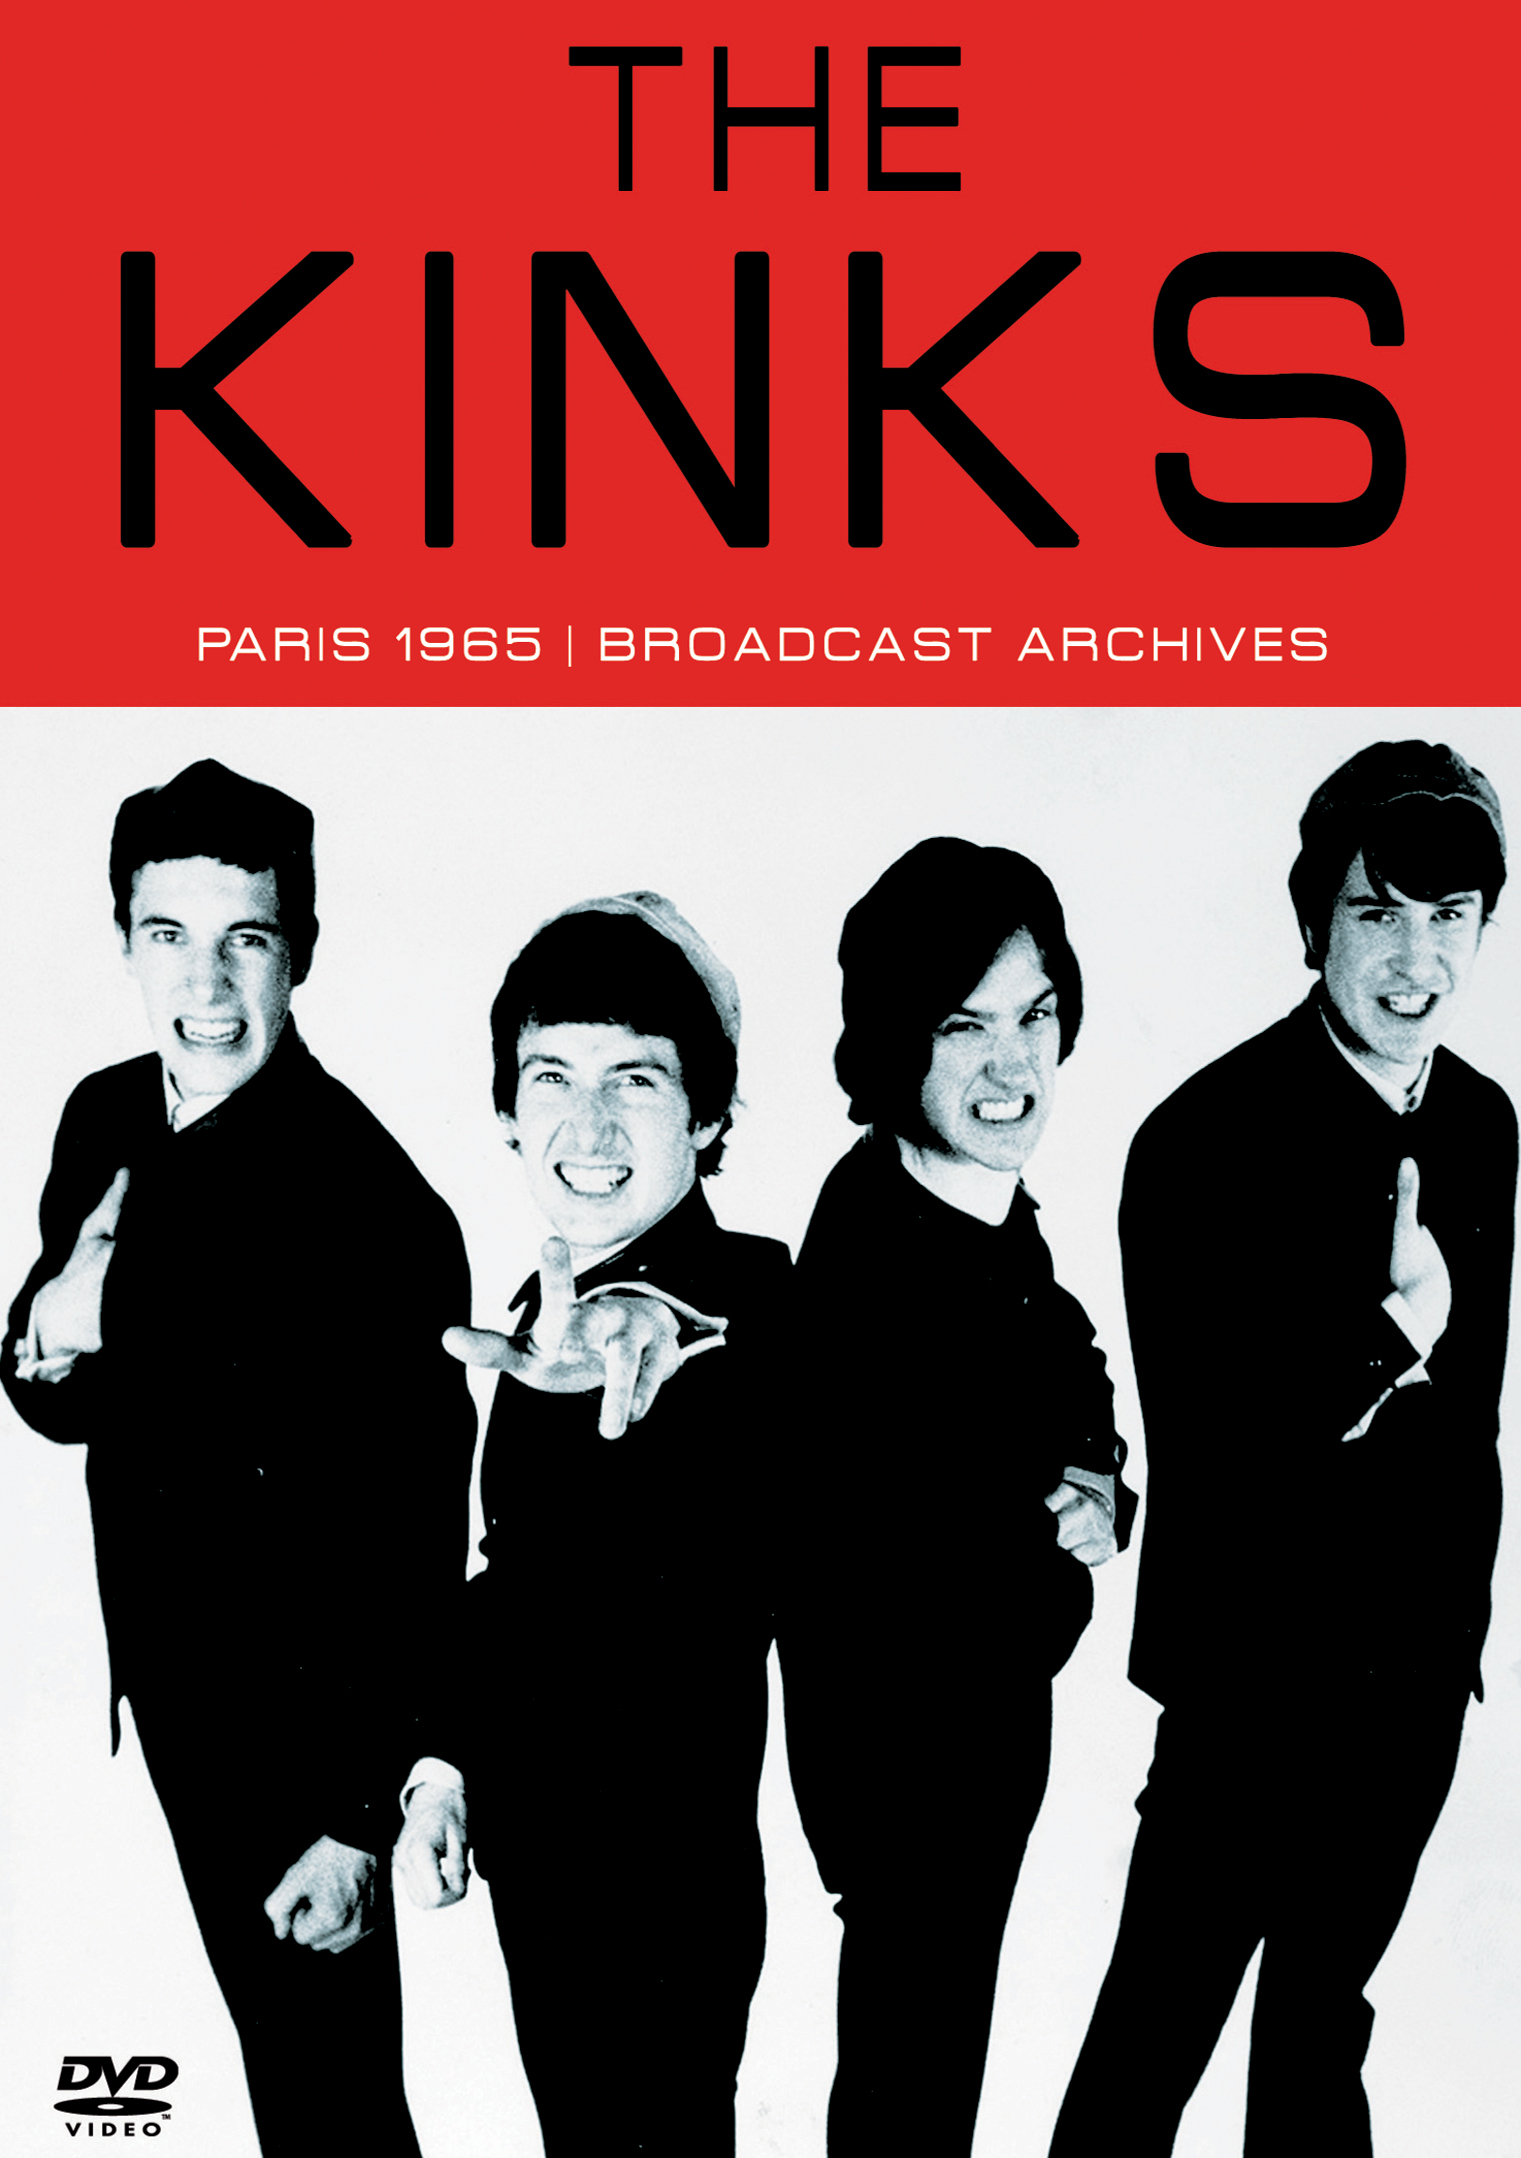 The Kinks: Paris 1965 - Broadcast Archives